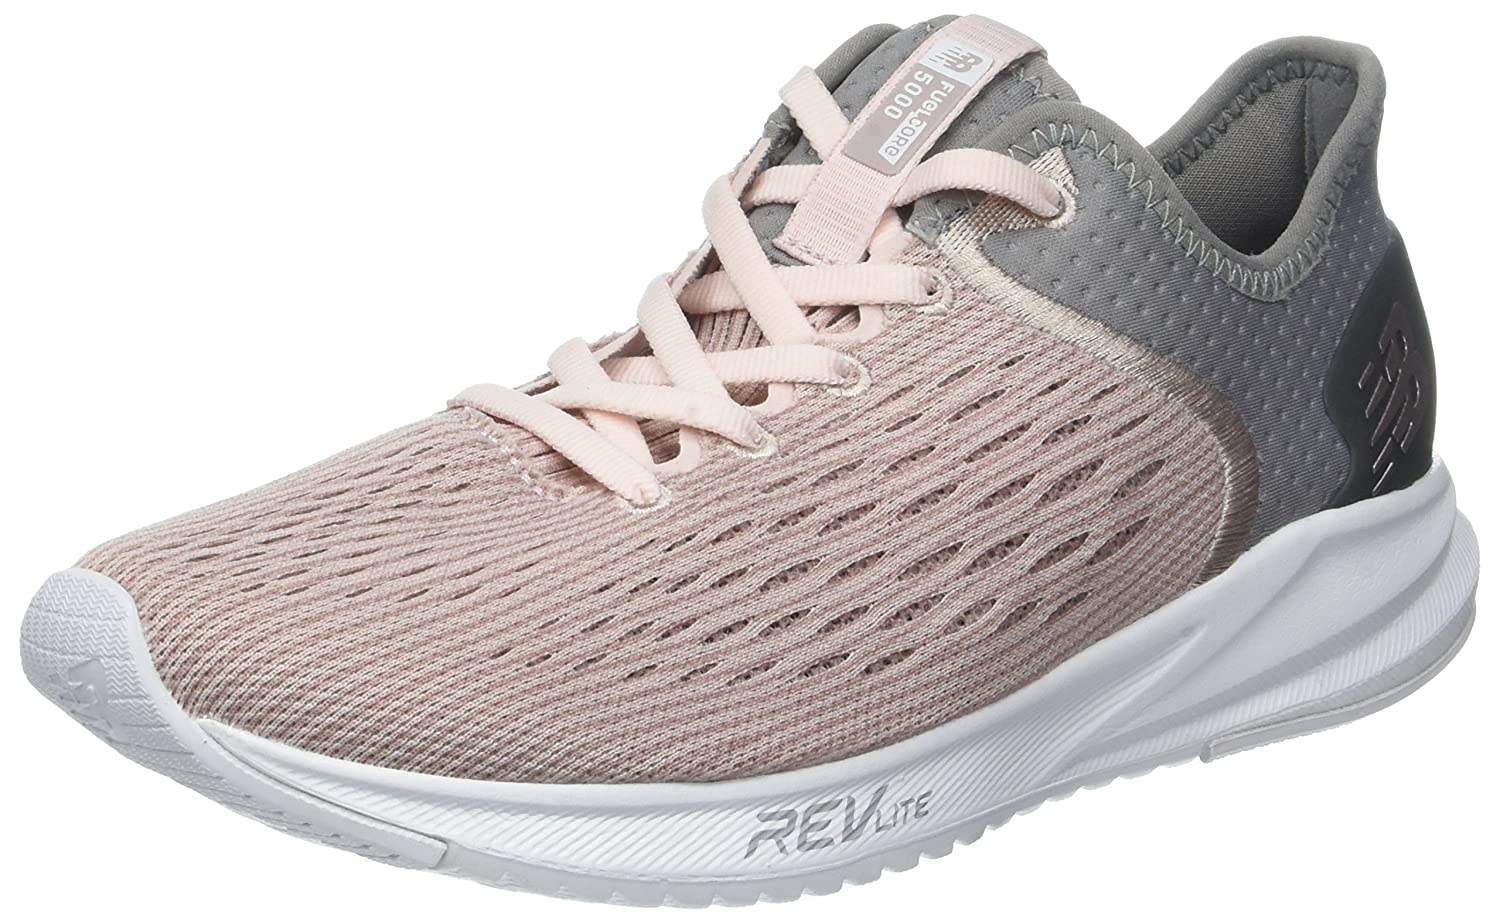 Conch Shell Latte 10 B(M) US New Balance Women's FuelCell 5K V1 FuelCore Running